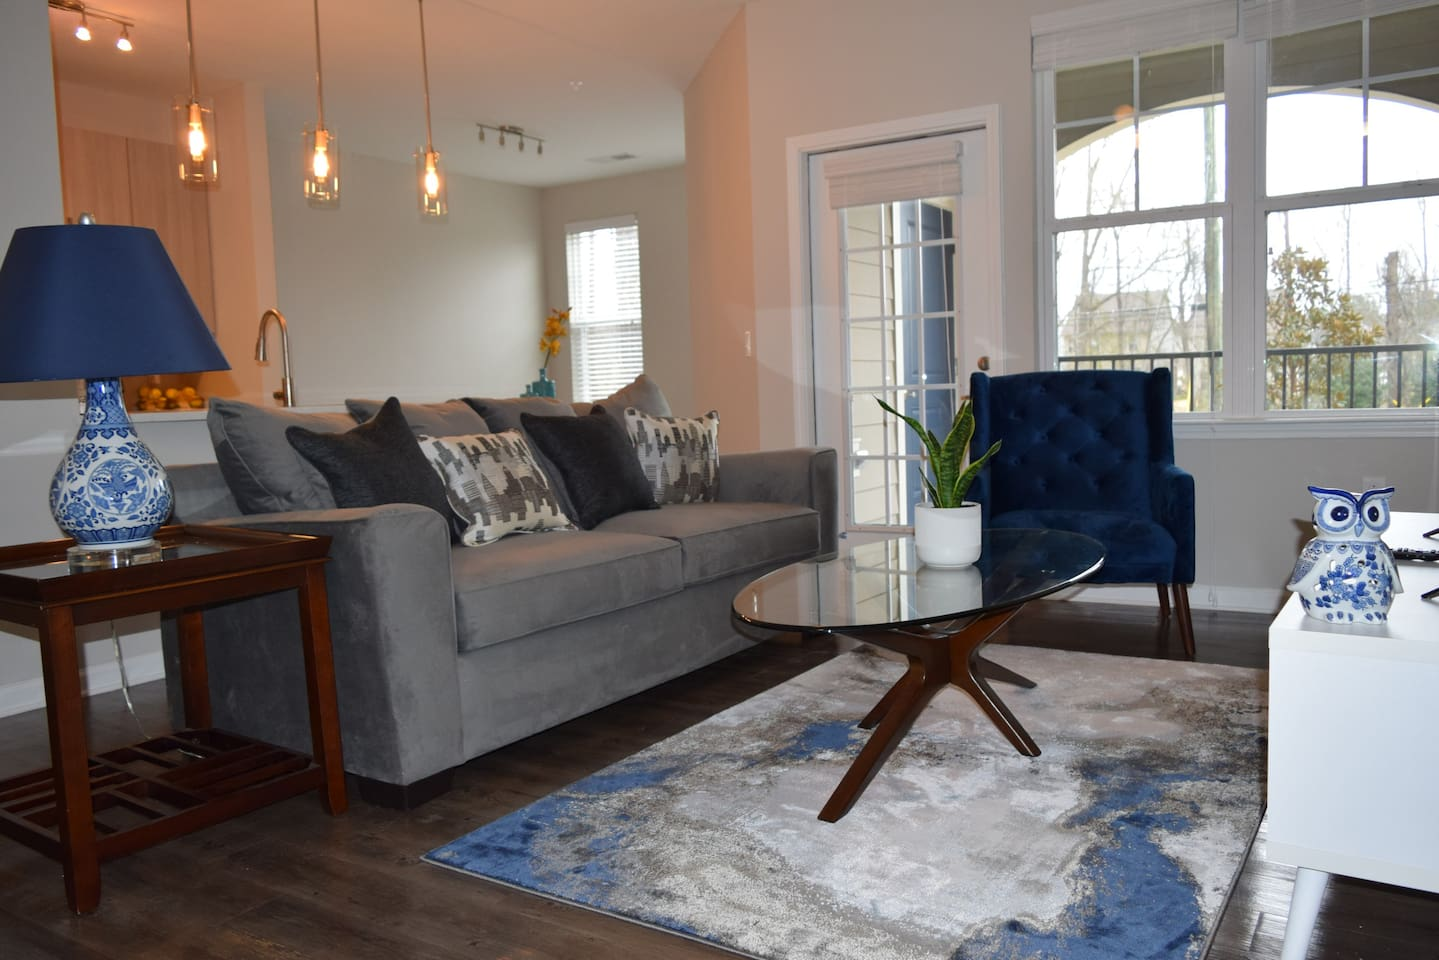 Living room with 43' 4k Roku TV, large glass coffee table, comfortable couch, and accent chair.